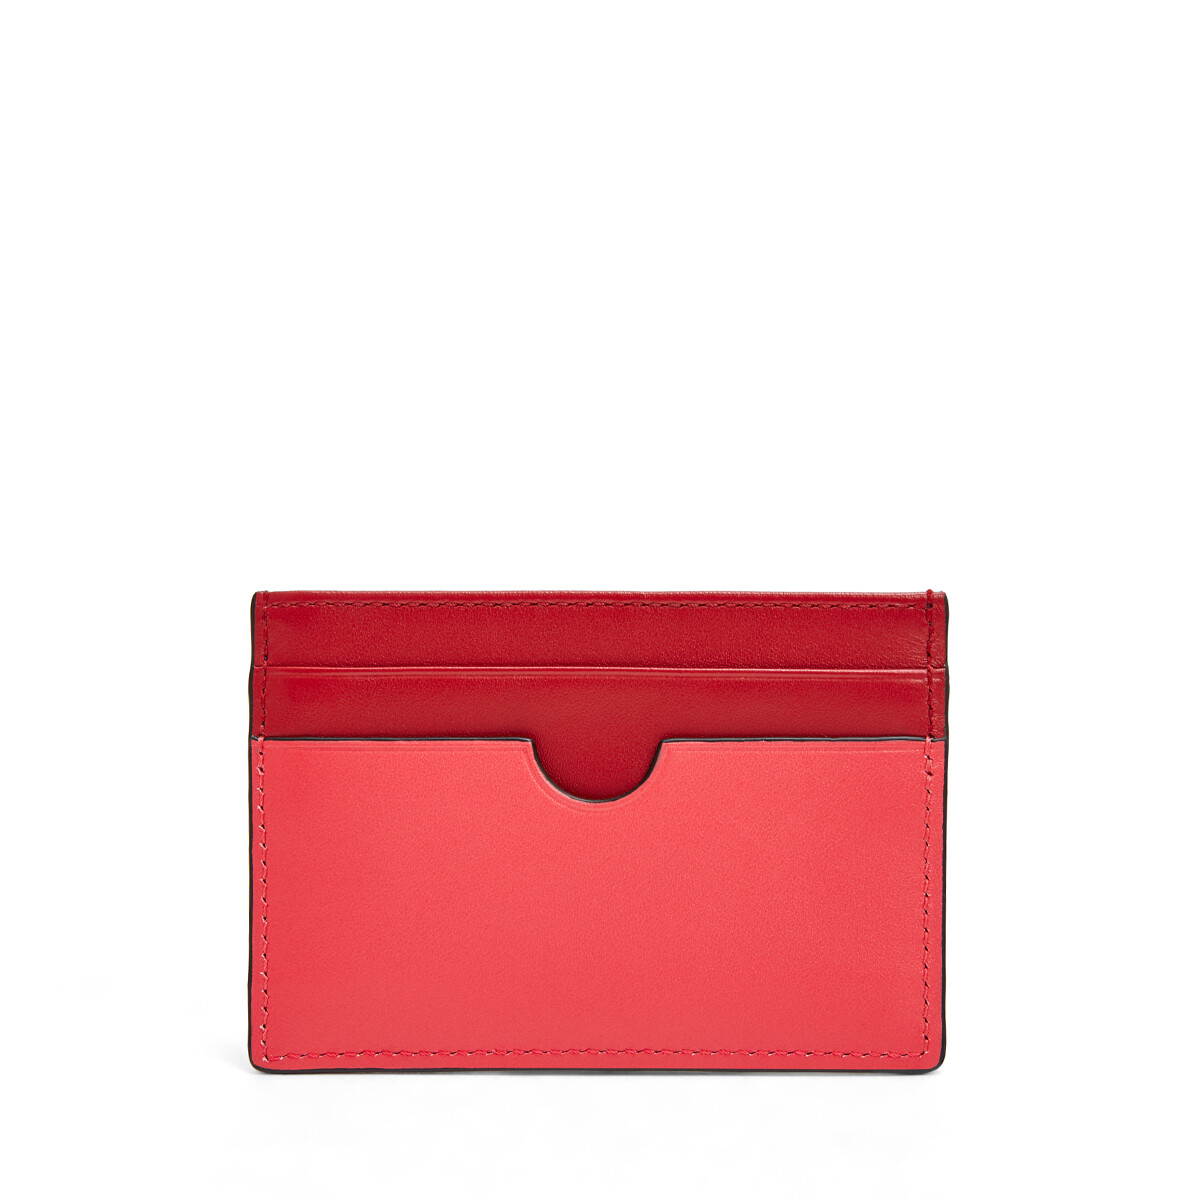 LOEWE Color Block Plain Cardholder Pomodoro/Poppy Pink front